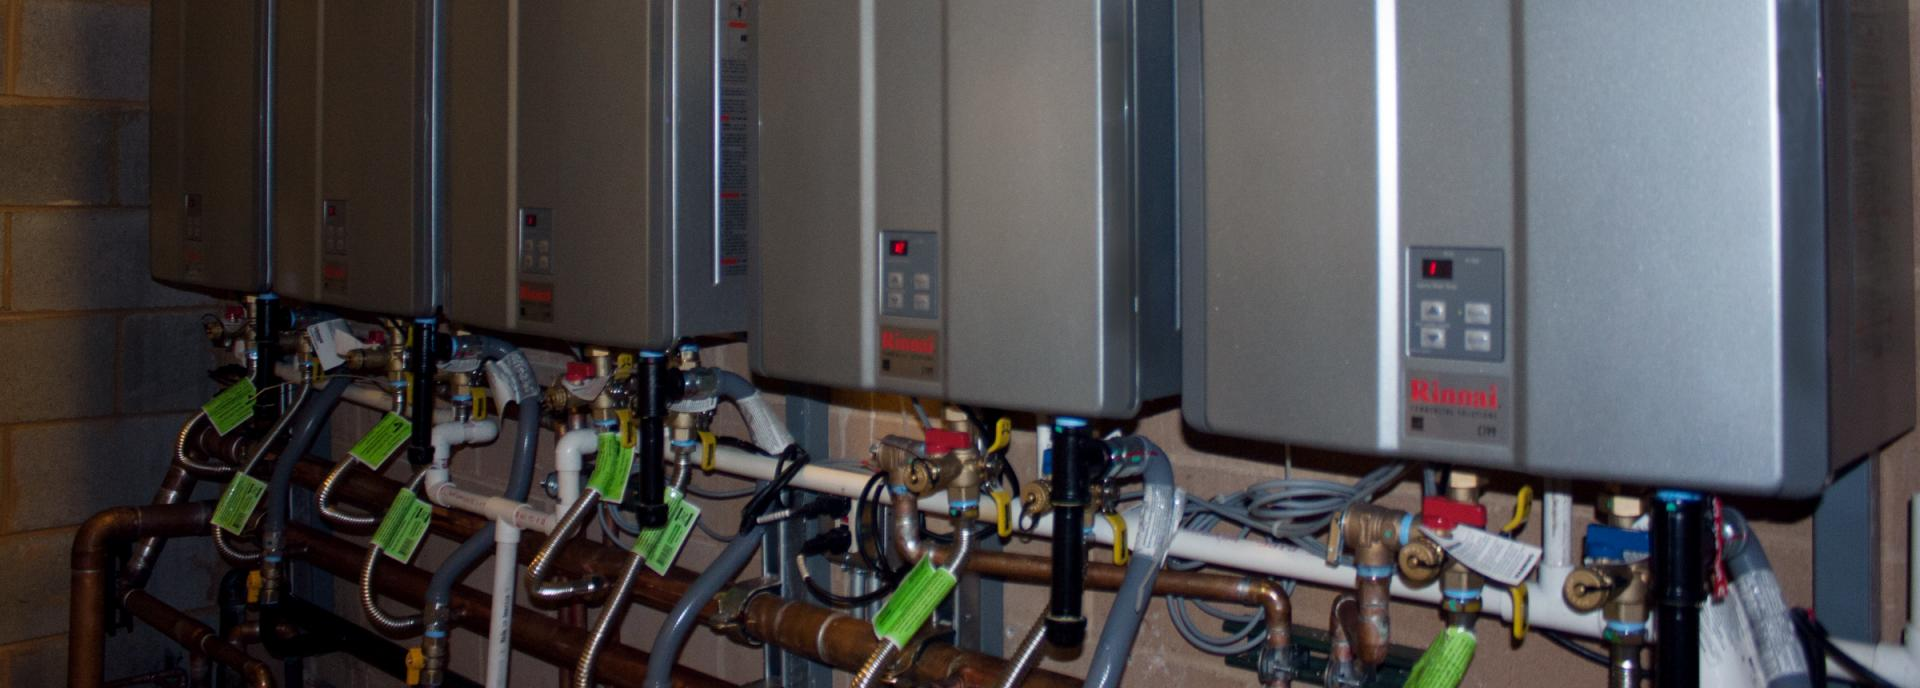 hight resolution of commercial tankless water heaters